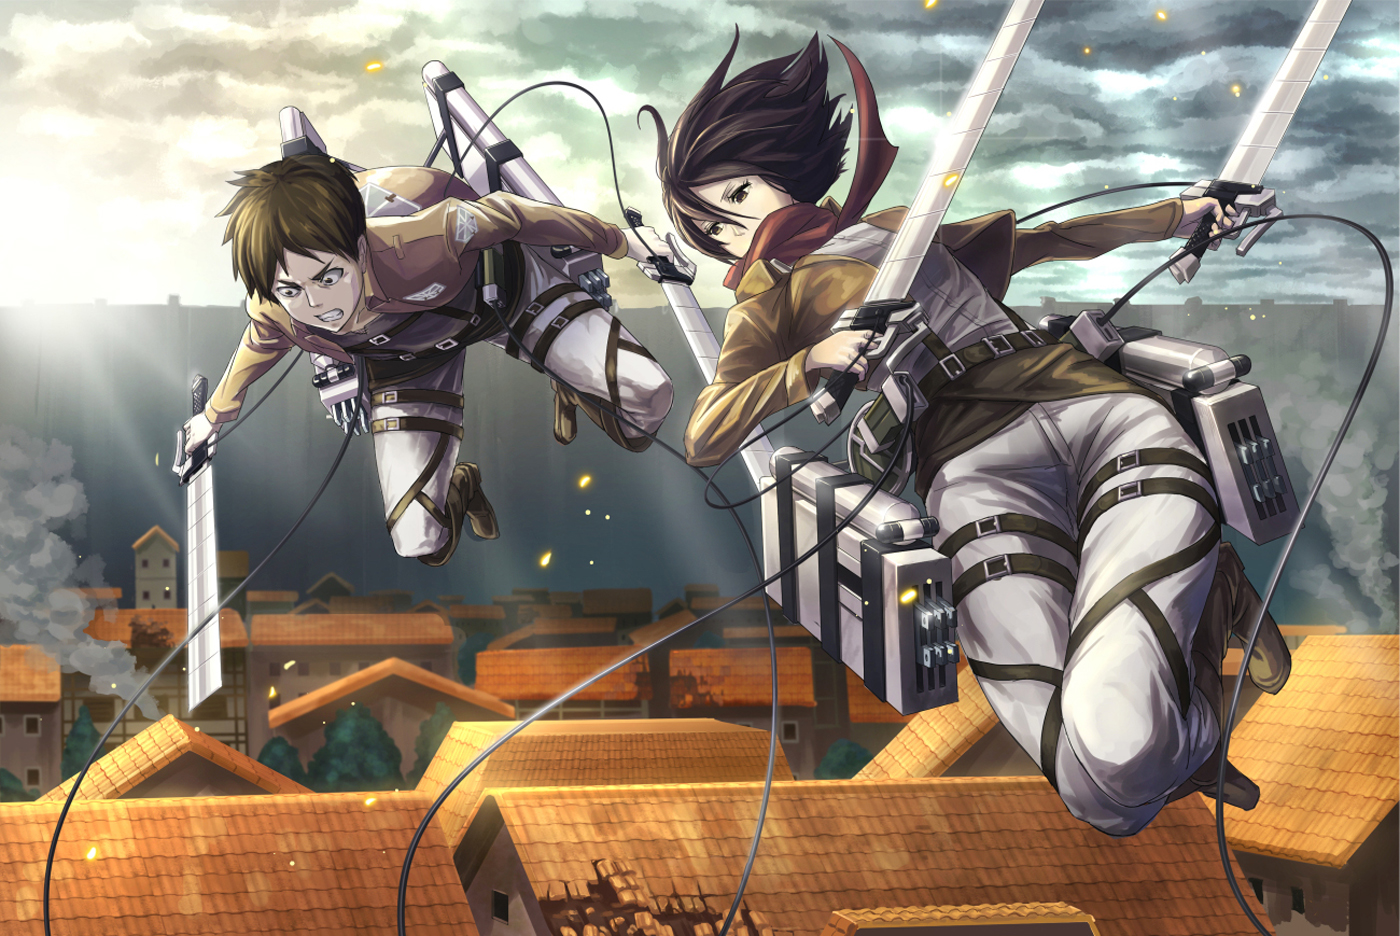 Mikasa Ackerman Anime Sword Blade HD Wallpaper Desktop Background 1400x936